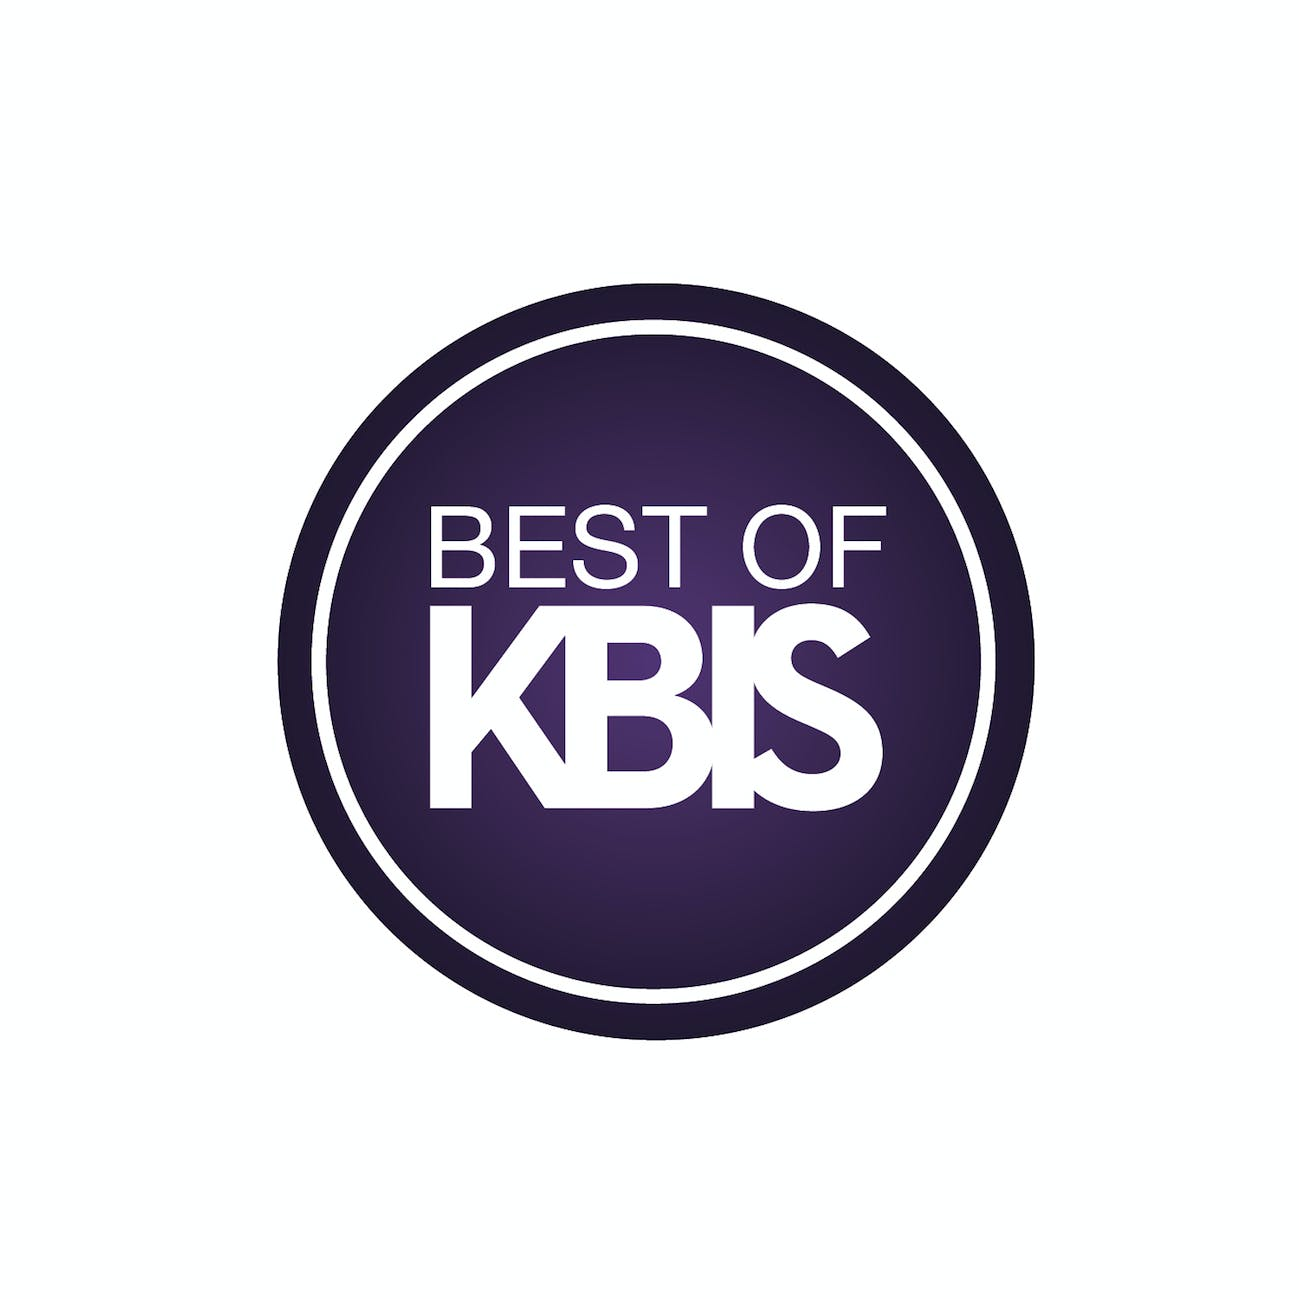 Image of Best of KBIS 01 6 in US Kitchen and Bathroom Industry recognizes Cosentino innovation - Cosentino